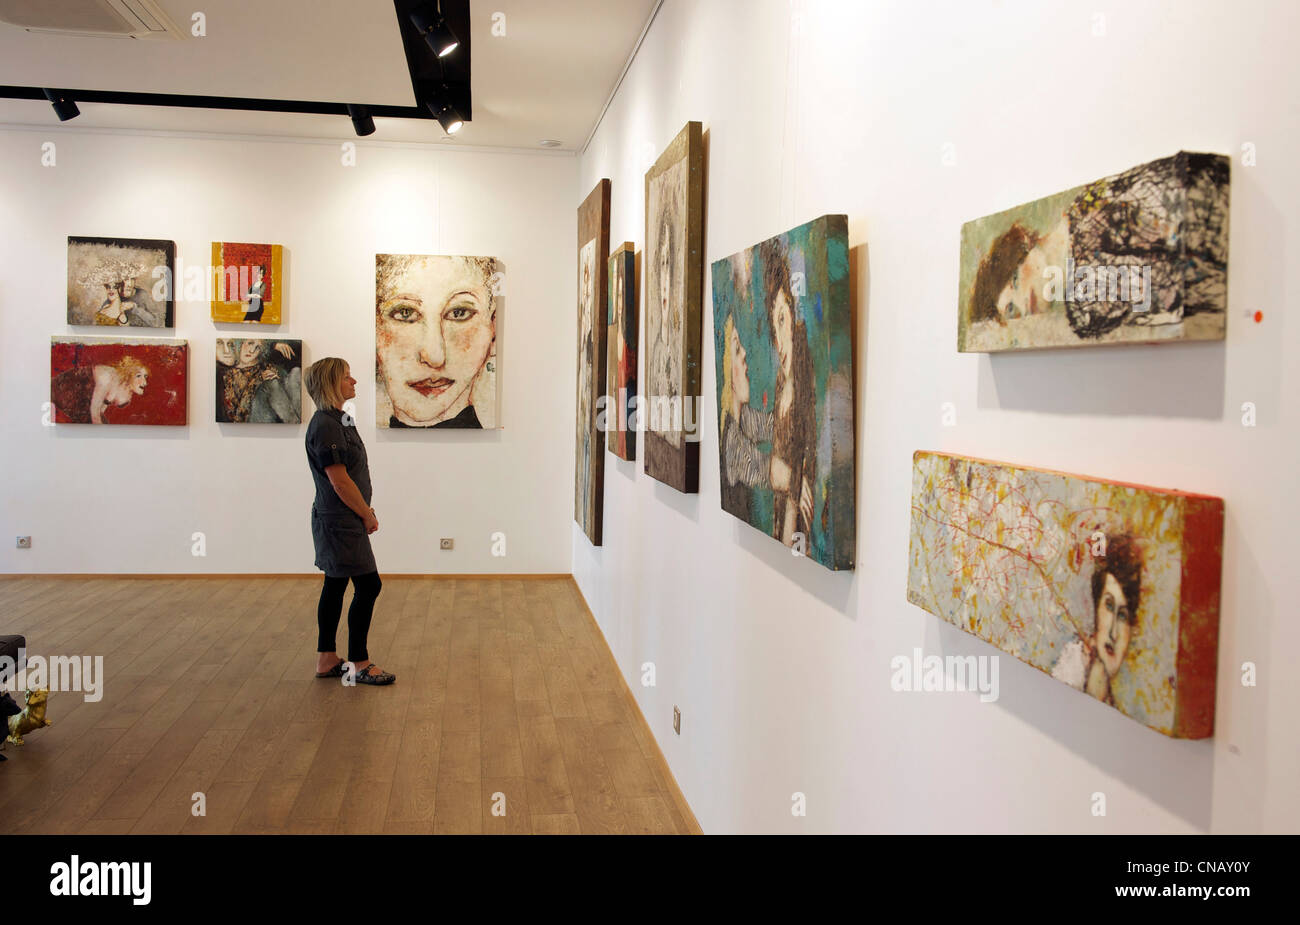 France, Haut Rhin, Mulhouse, art gallery Courant d'Art (exhibition of paintings by Marlis Albrecht), 10 Street - Stock Image